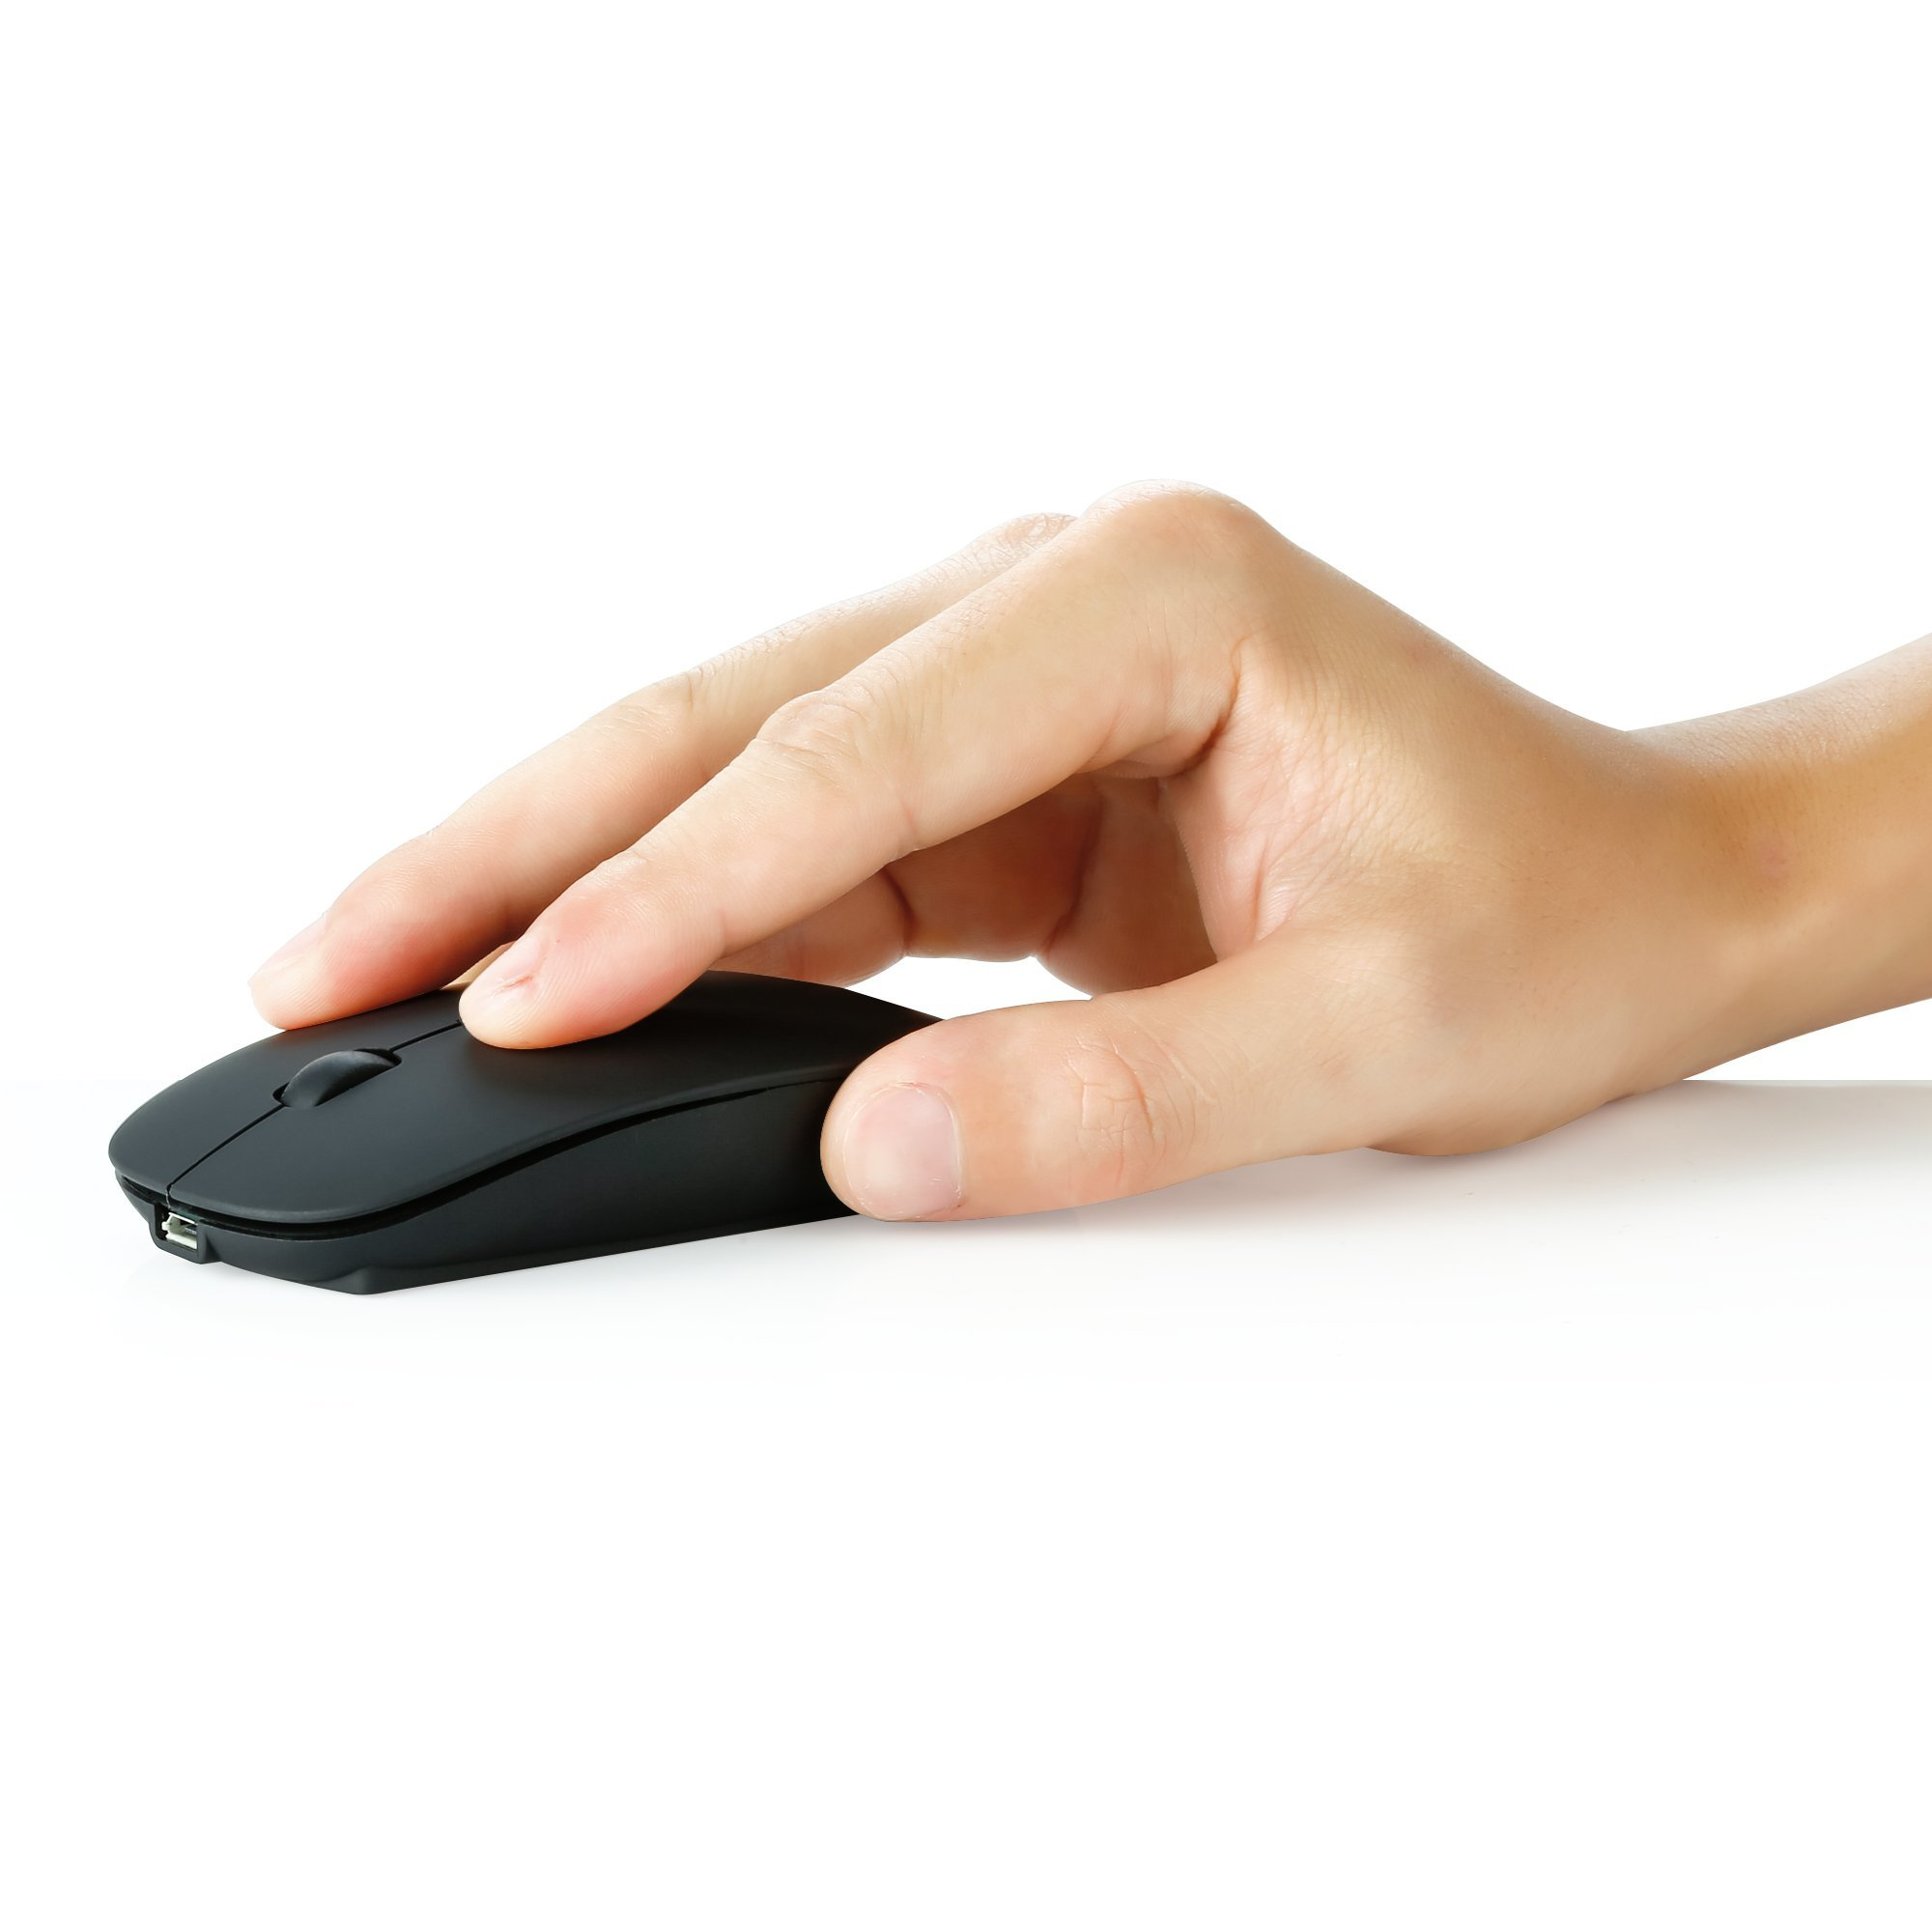 UHURU Rechargeable Bluetooth Wireless Mouse for PC, Mac, Laptop, Android Tablet (Black) by UHURU (Image #3)